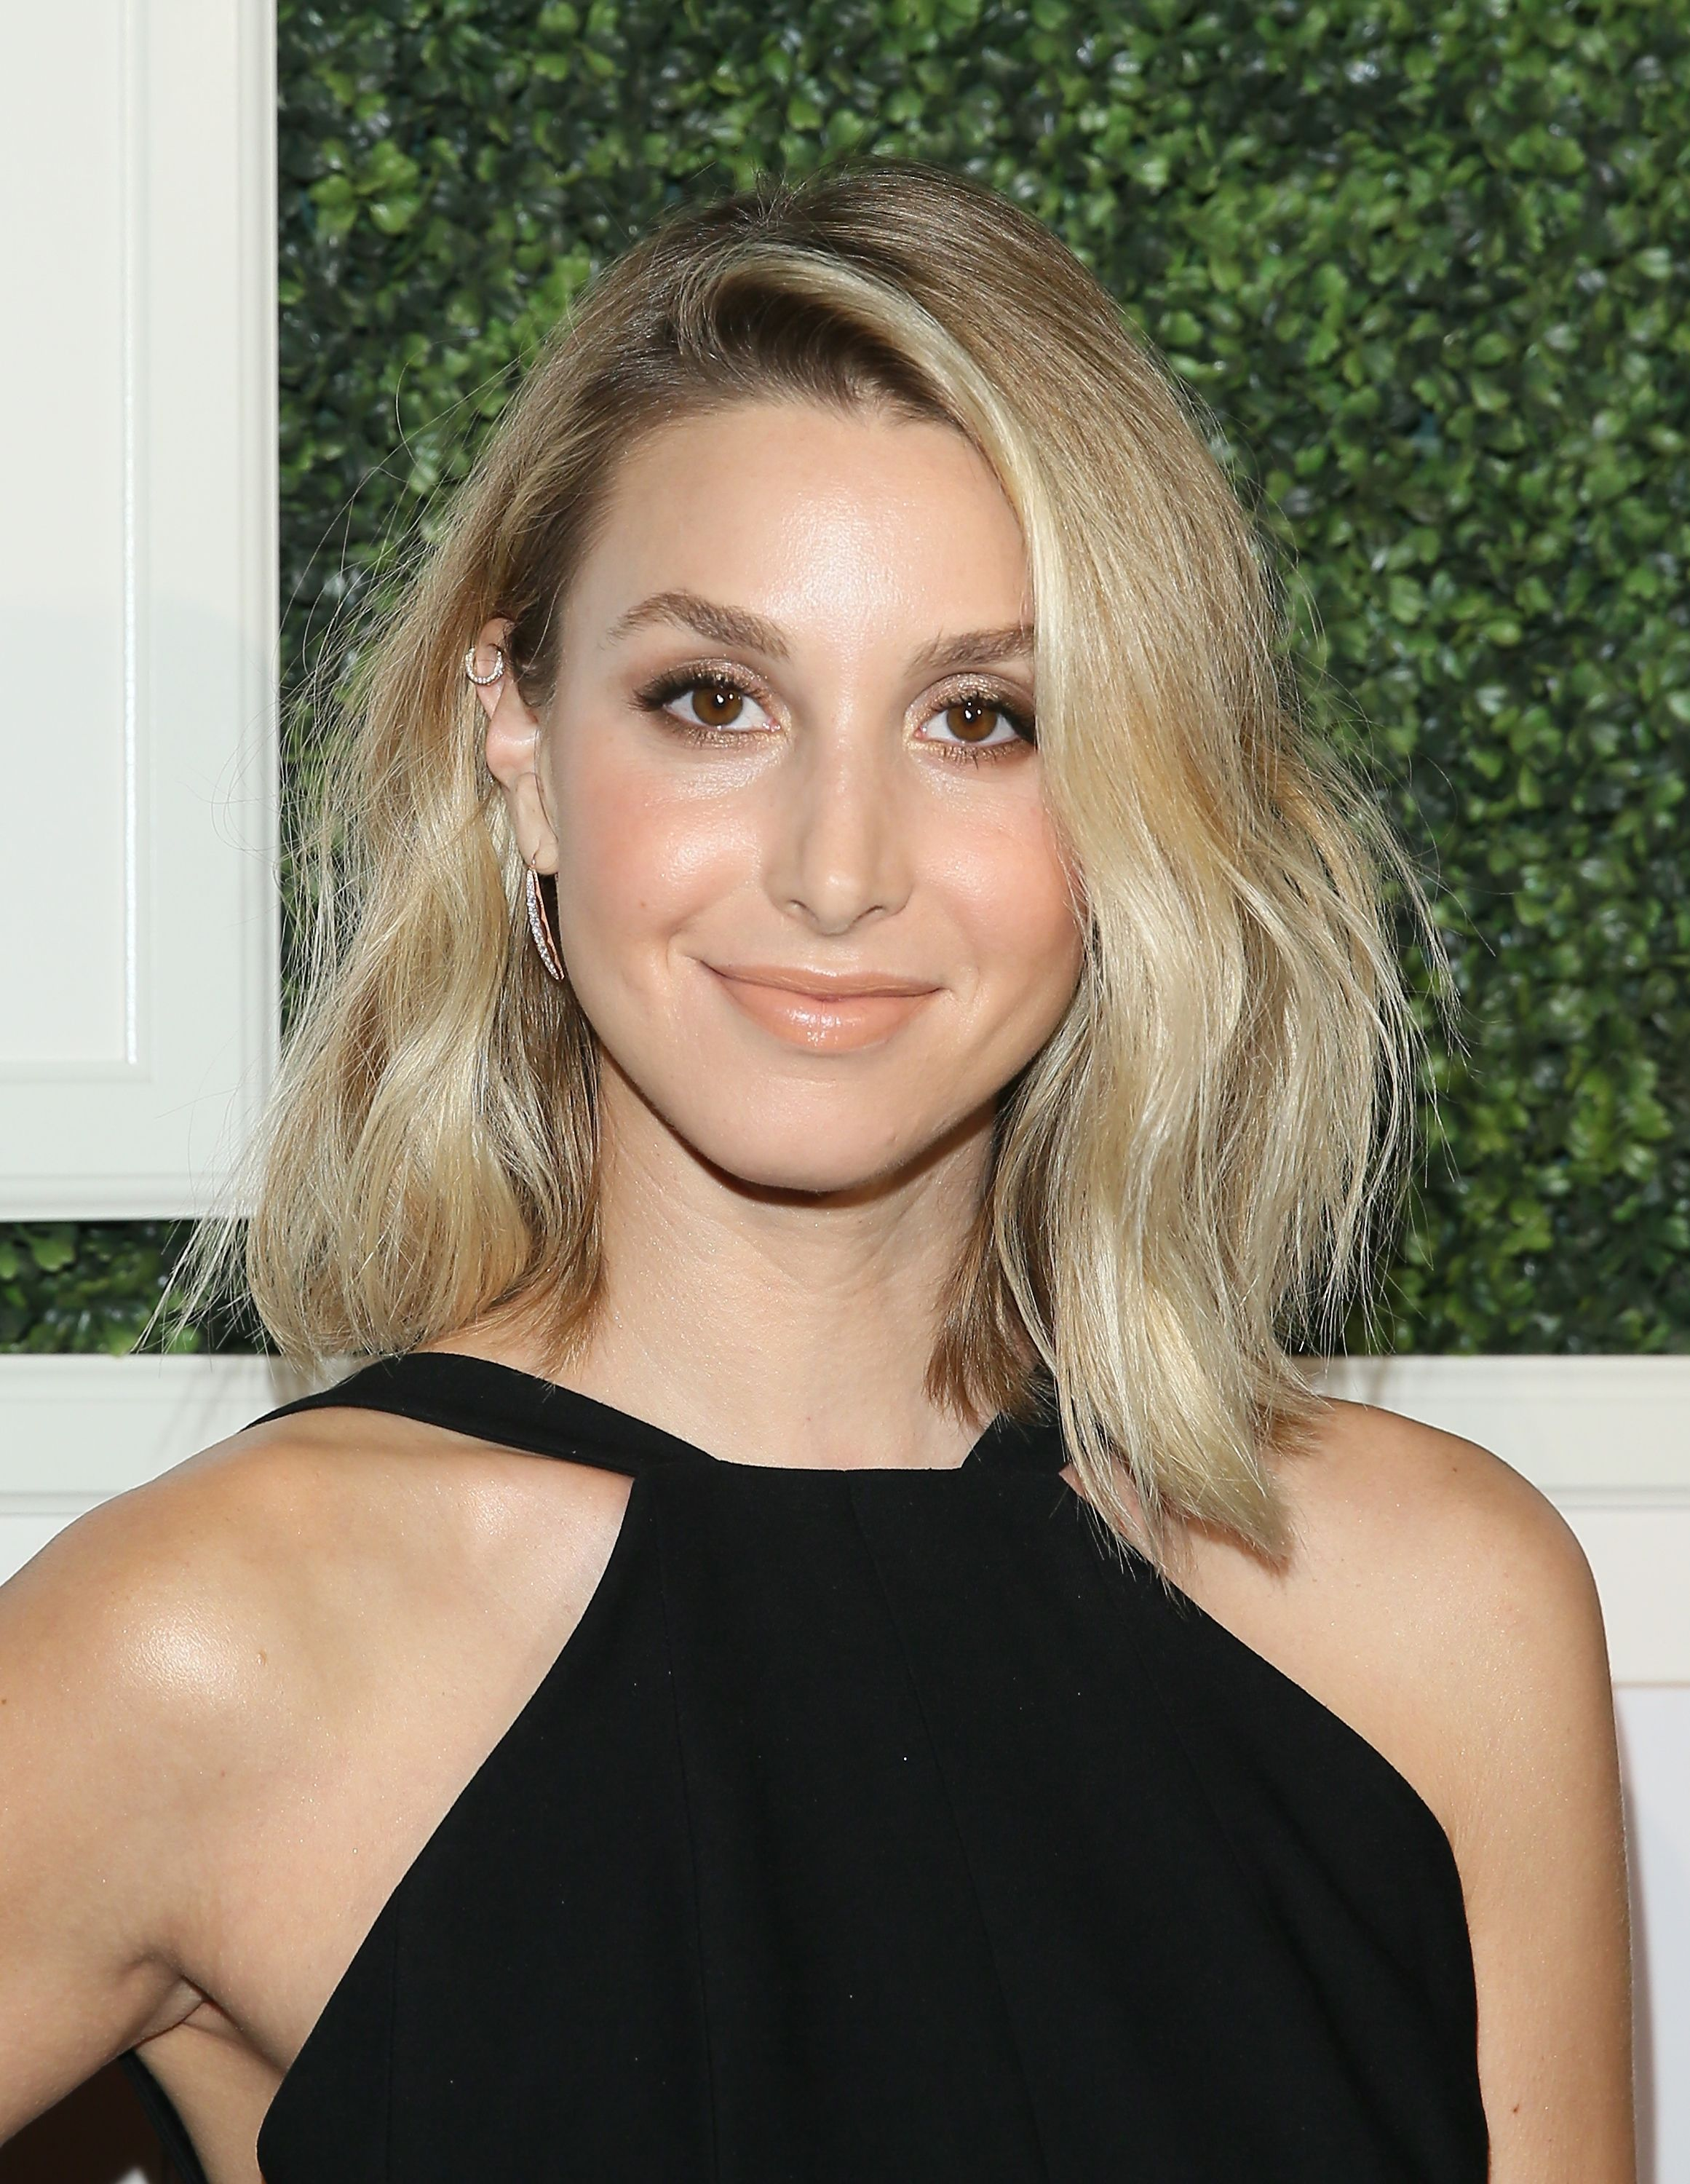 Celebrity Hairstyles Fall 2014: Take These Ideas to the Salon